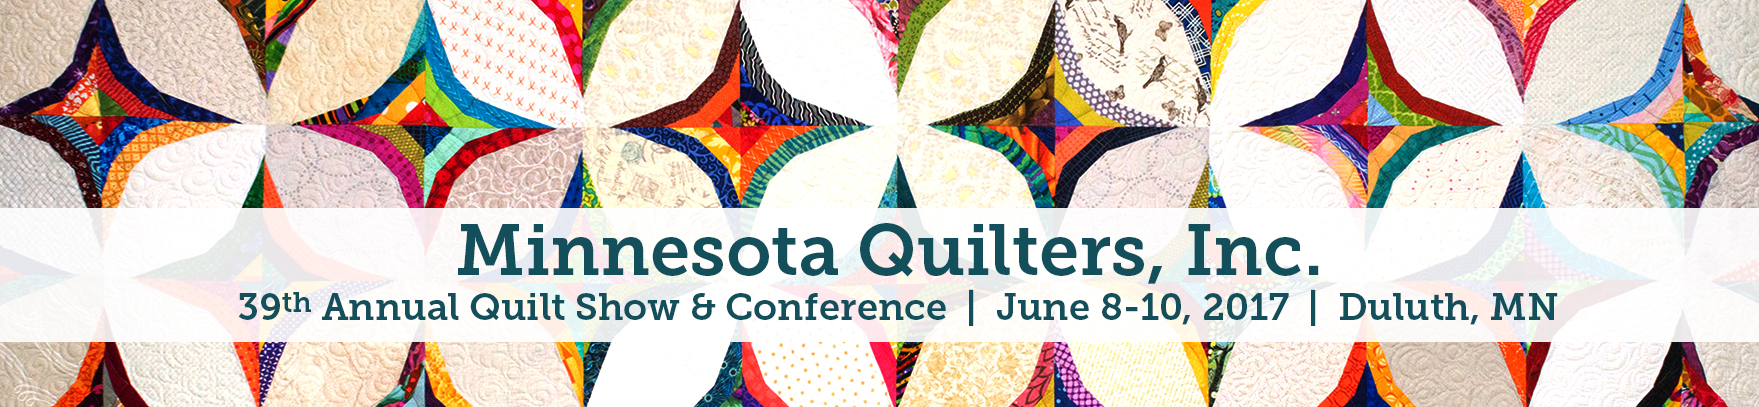 2017 Raffle Quilt Banner With Text